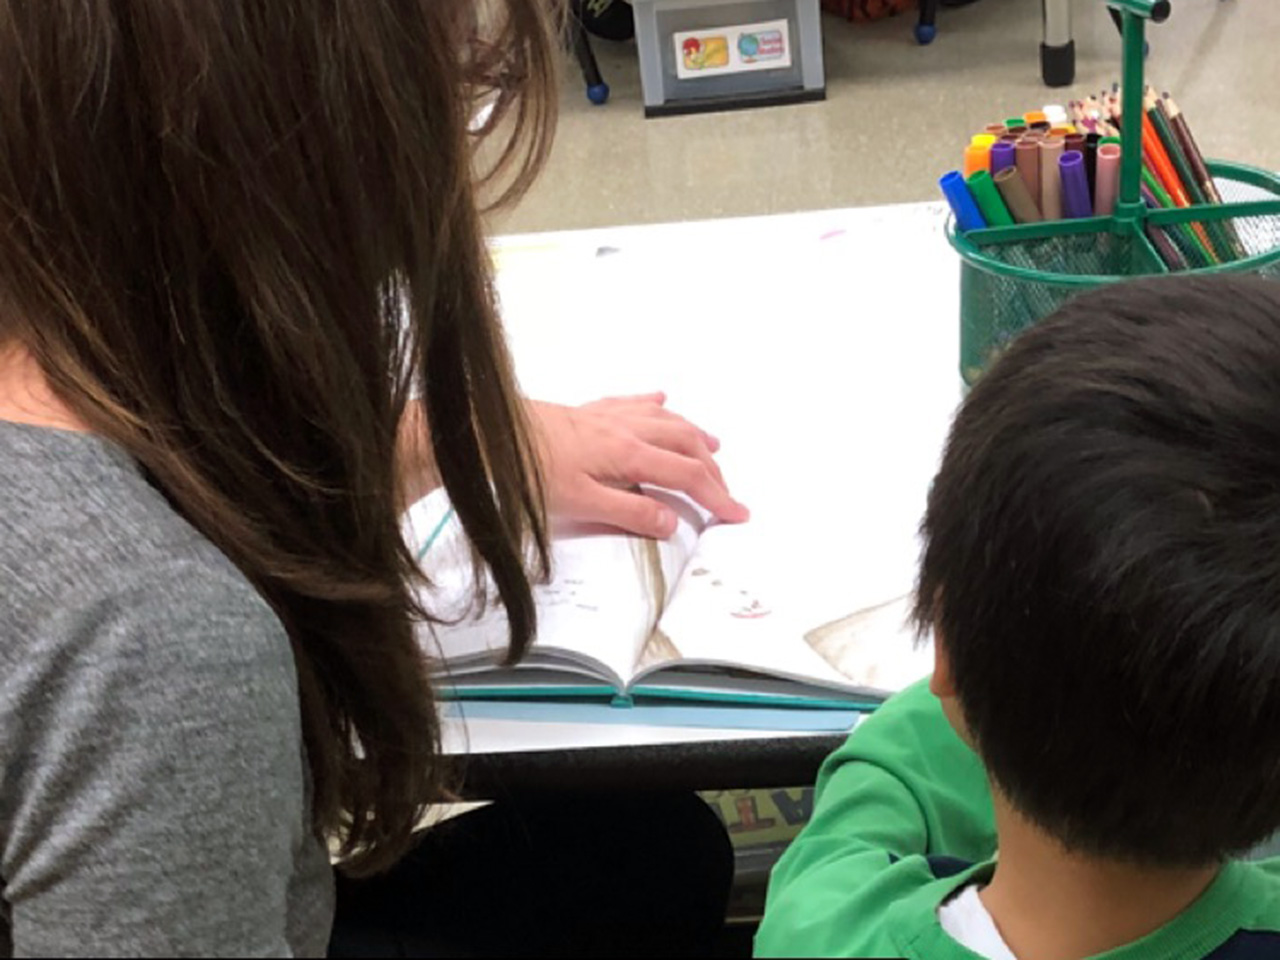 Woman and boy reading together